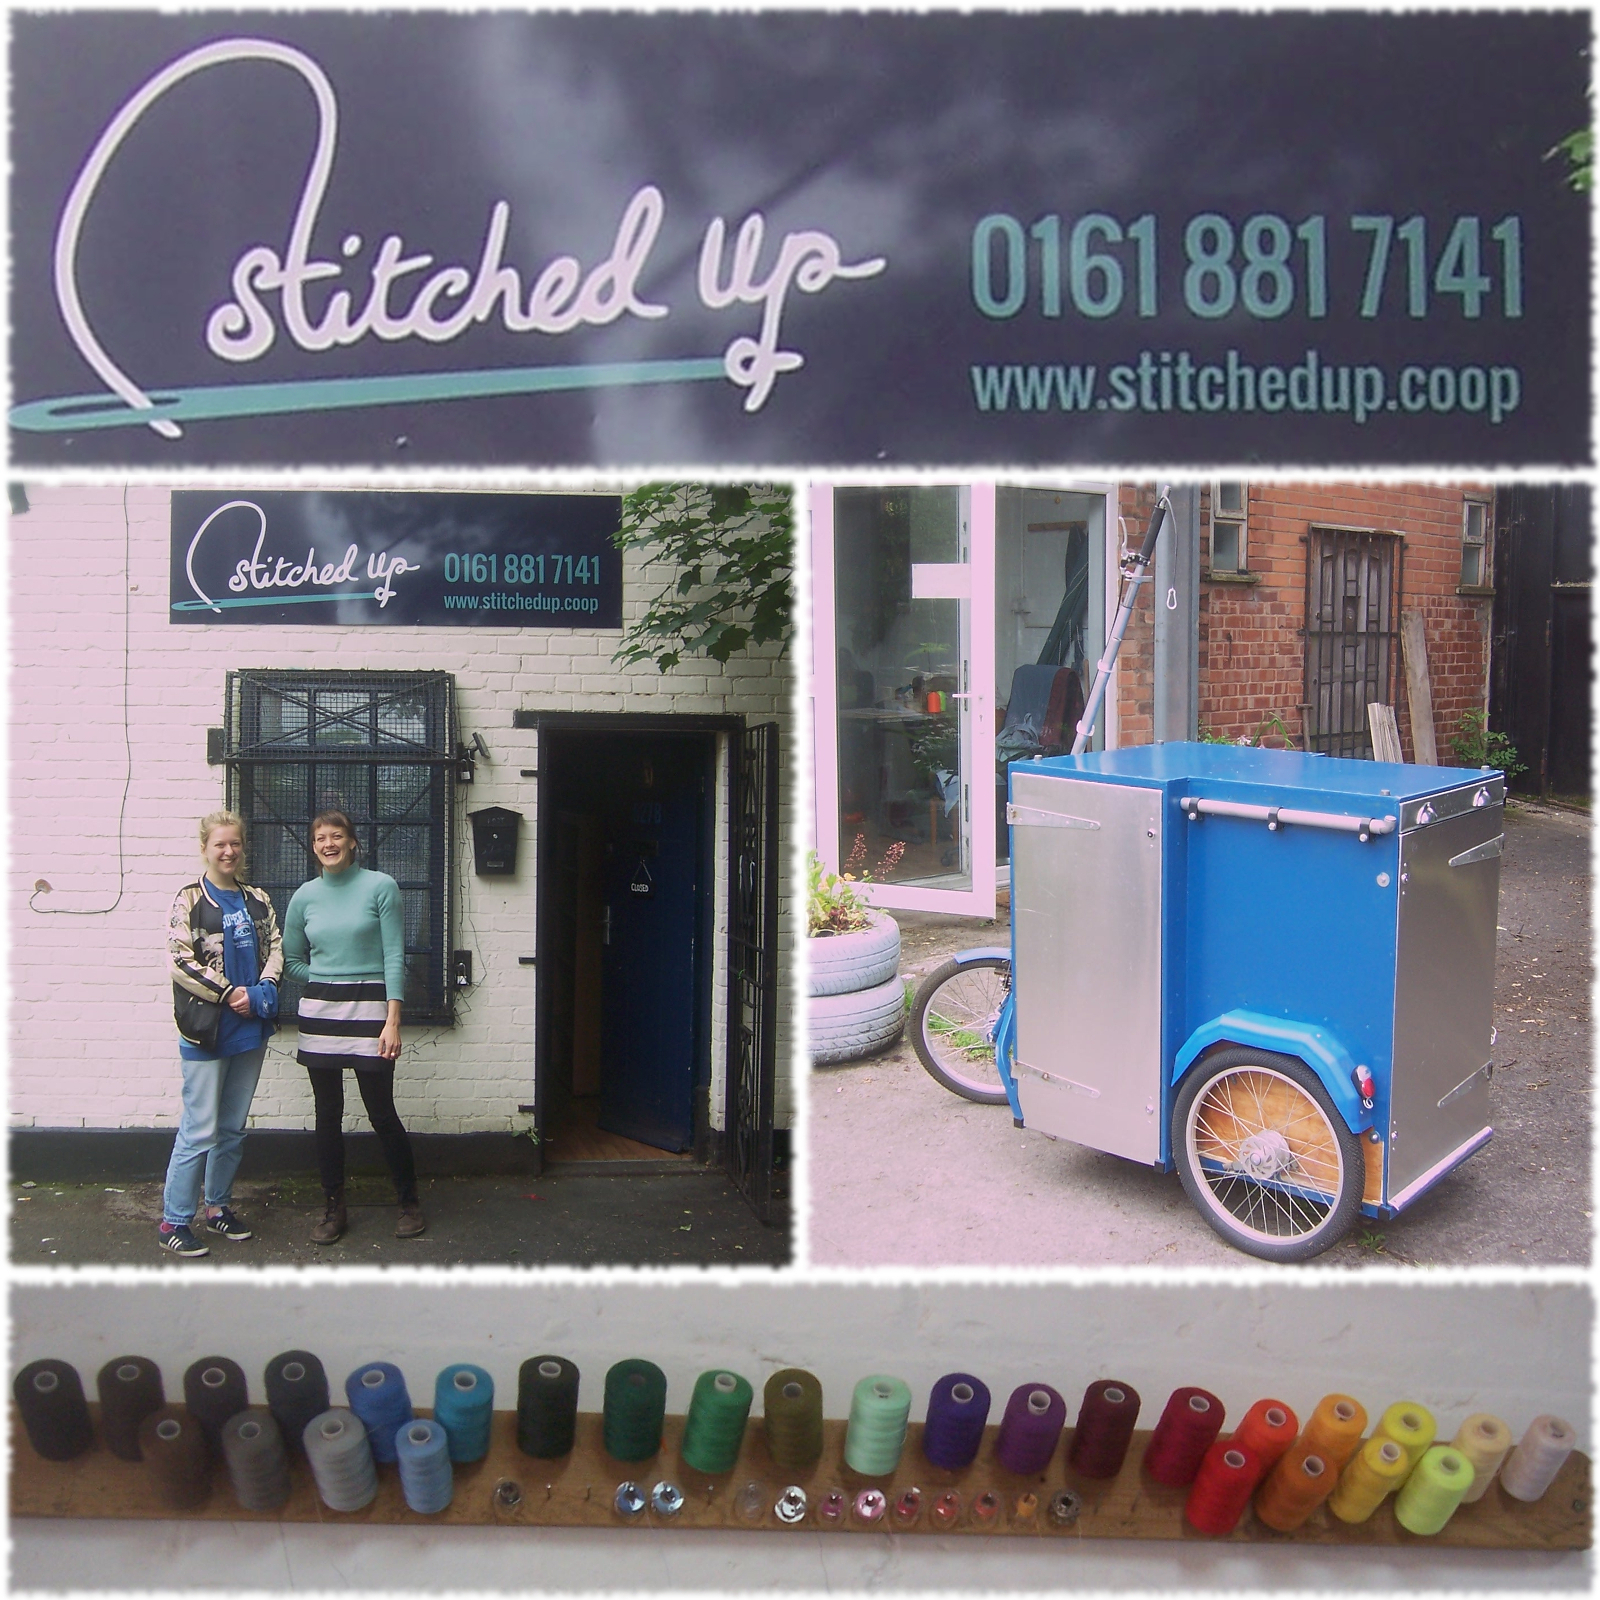 Stitched Up In Chorlton